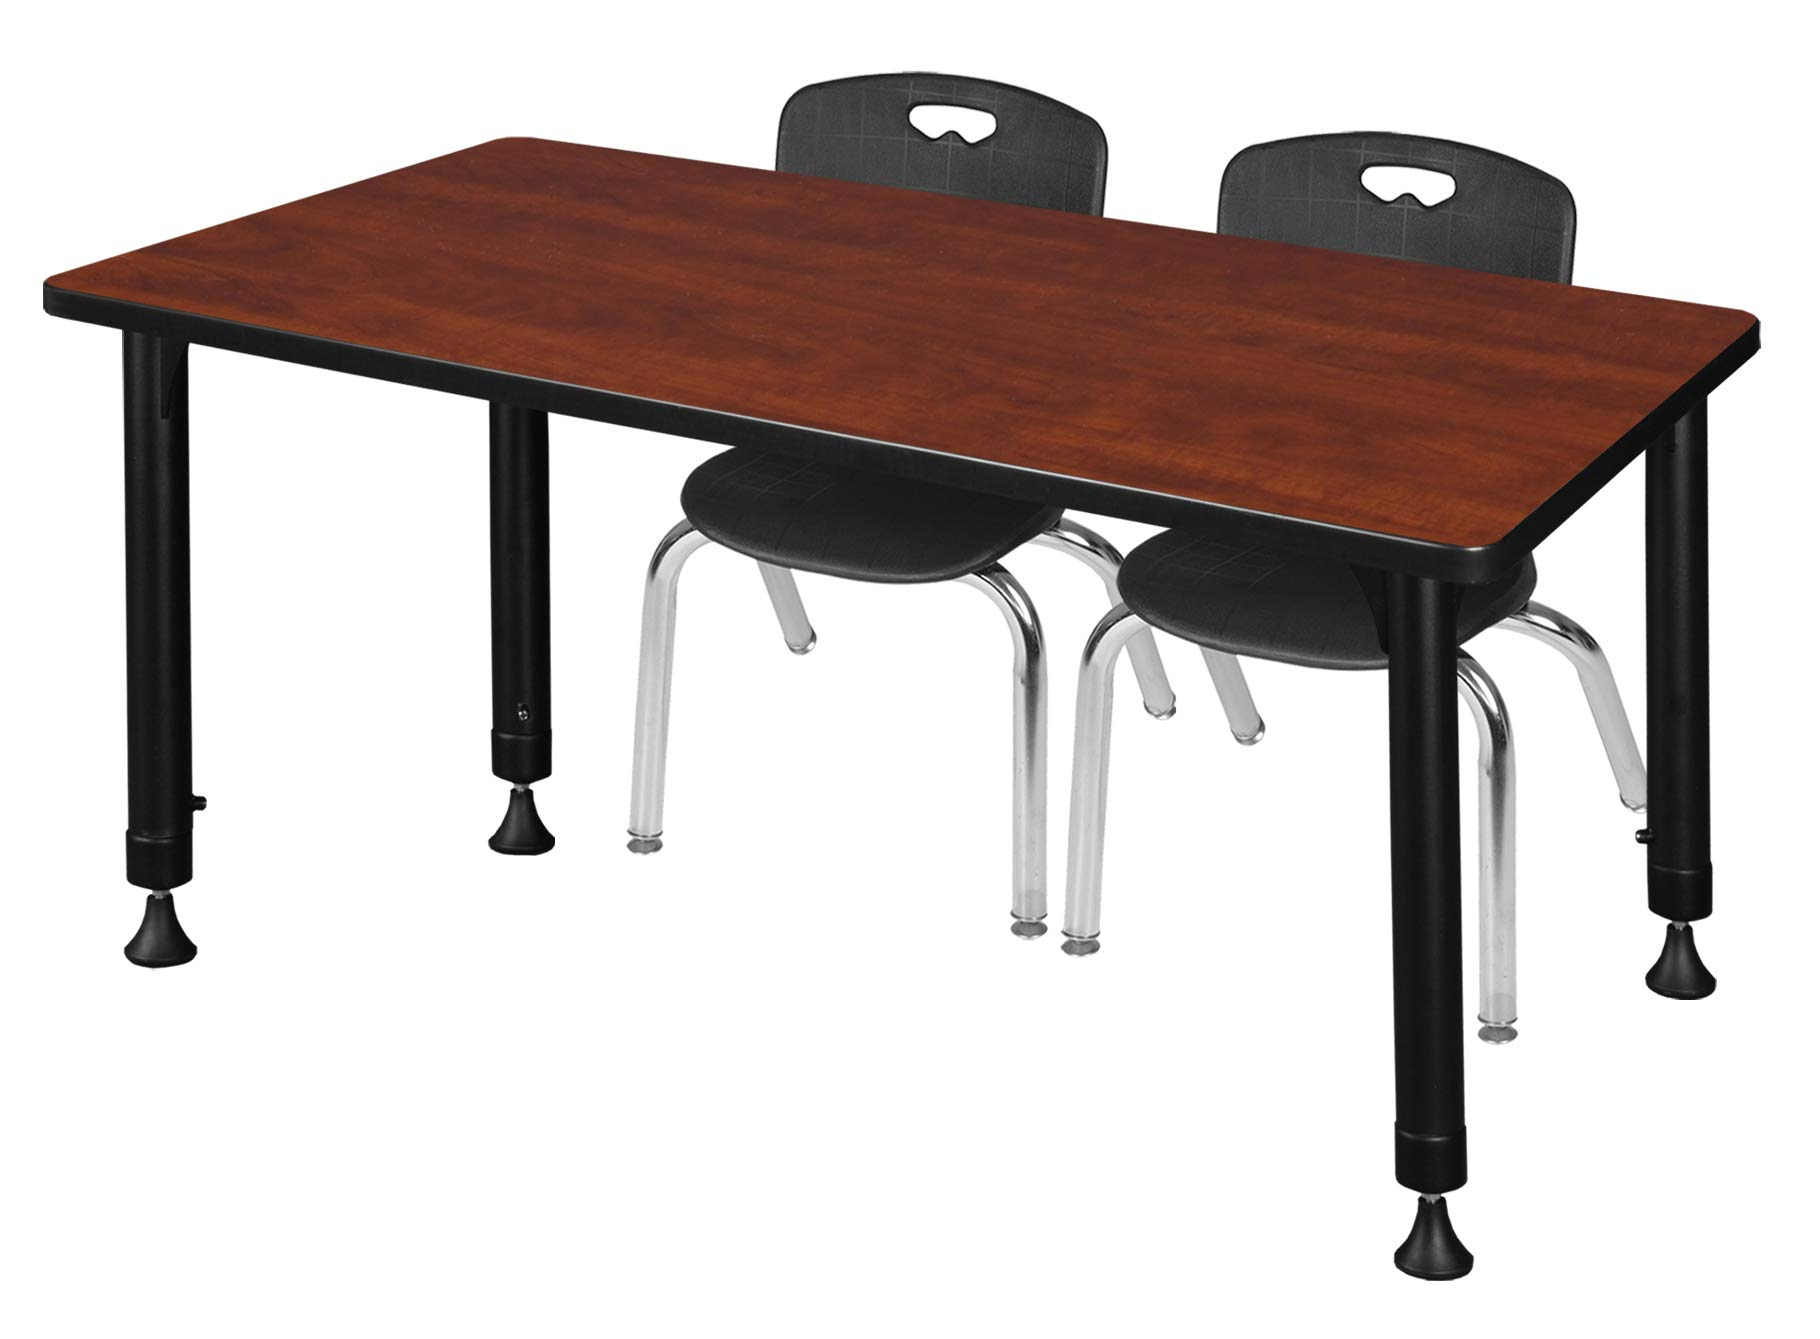 Regency MT4824CHAPBK45BK Kee Height Adjustable Classroom Table Set with Two 12'' Andy Chairs 48'' x 24'' Cherry/Black